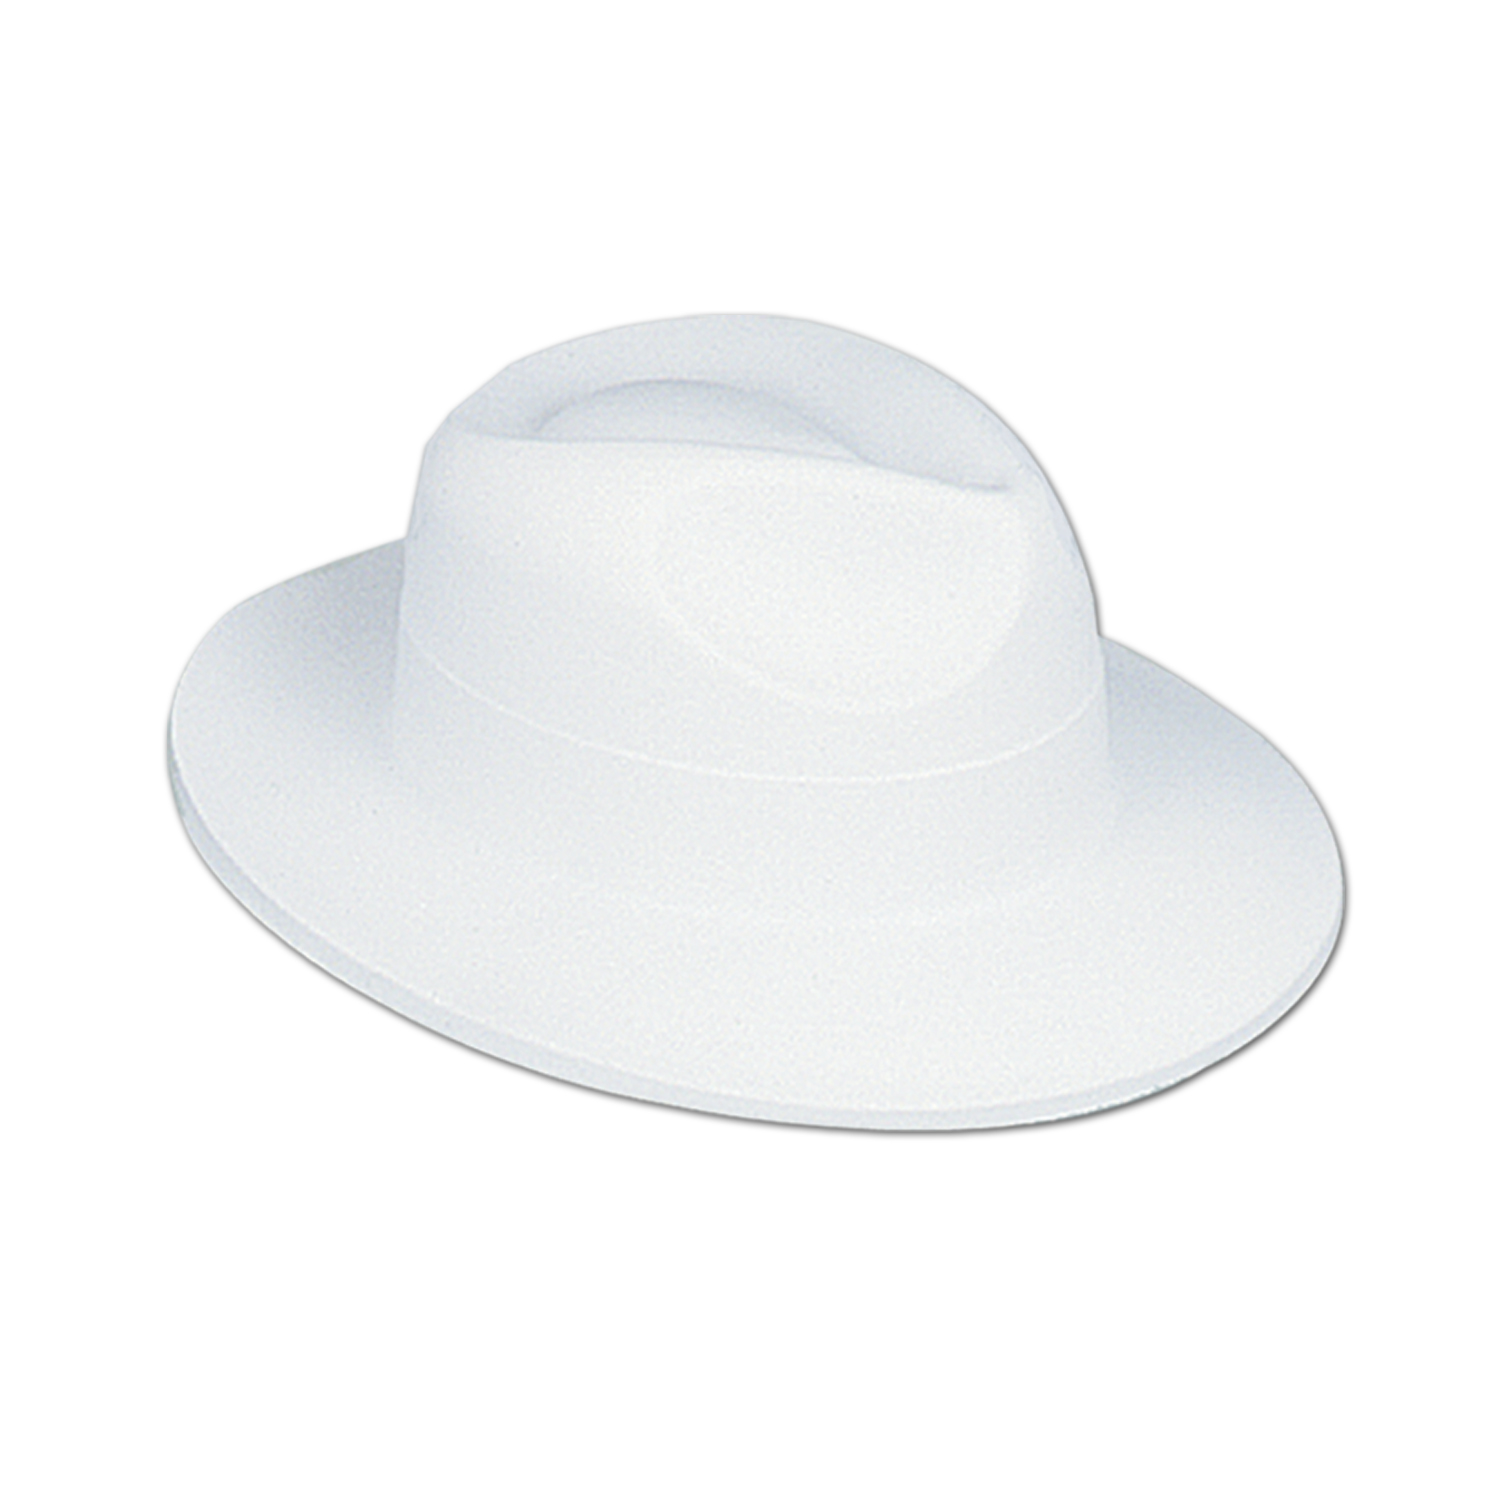 a143b7da59e 24 Units of White Velour Fedora plastic-backed velour  one size fits most - Party  Hats   Tiara - at - alltimetrading.com